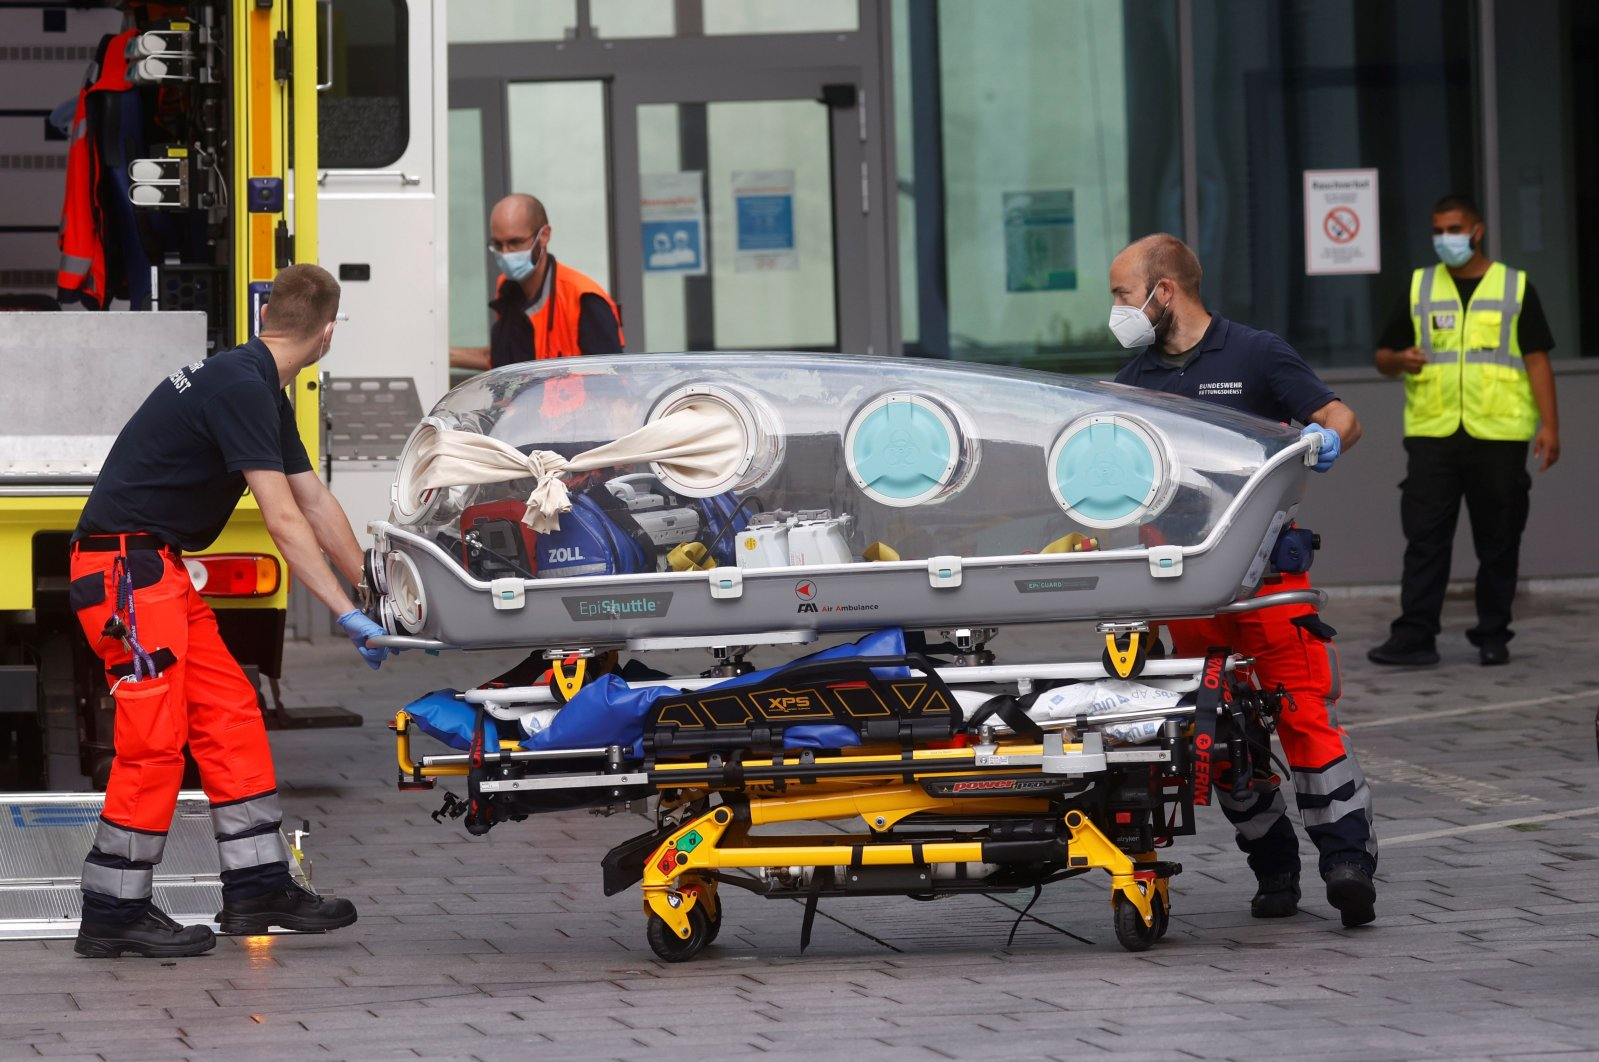 German army emergency personnel load into their ambulance the stretcher that was used to transport Russian opposition figure Alexei Navalny at Berlin's Charite hospital, where Navalny is being following a suspected poisoning, Germany, Aug. 22, 2020. (AFP Photo)